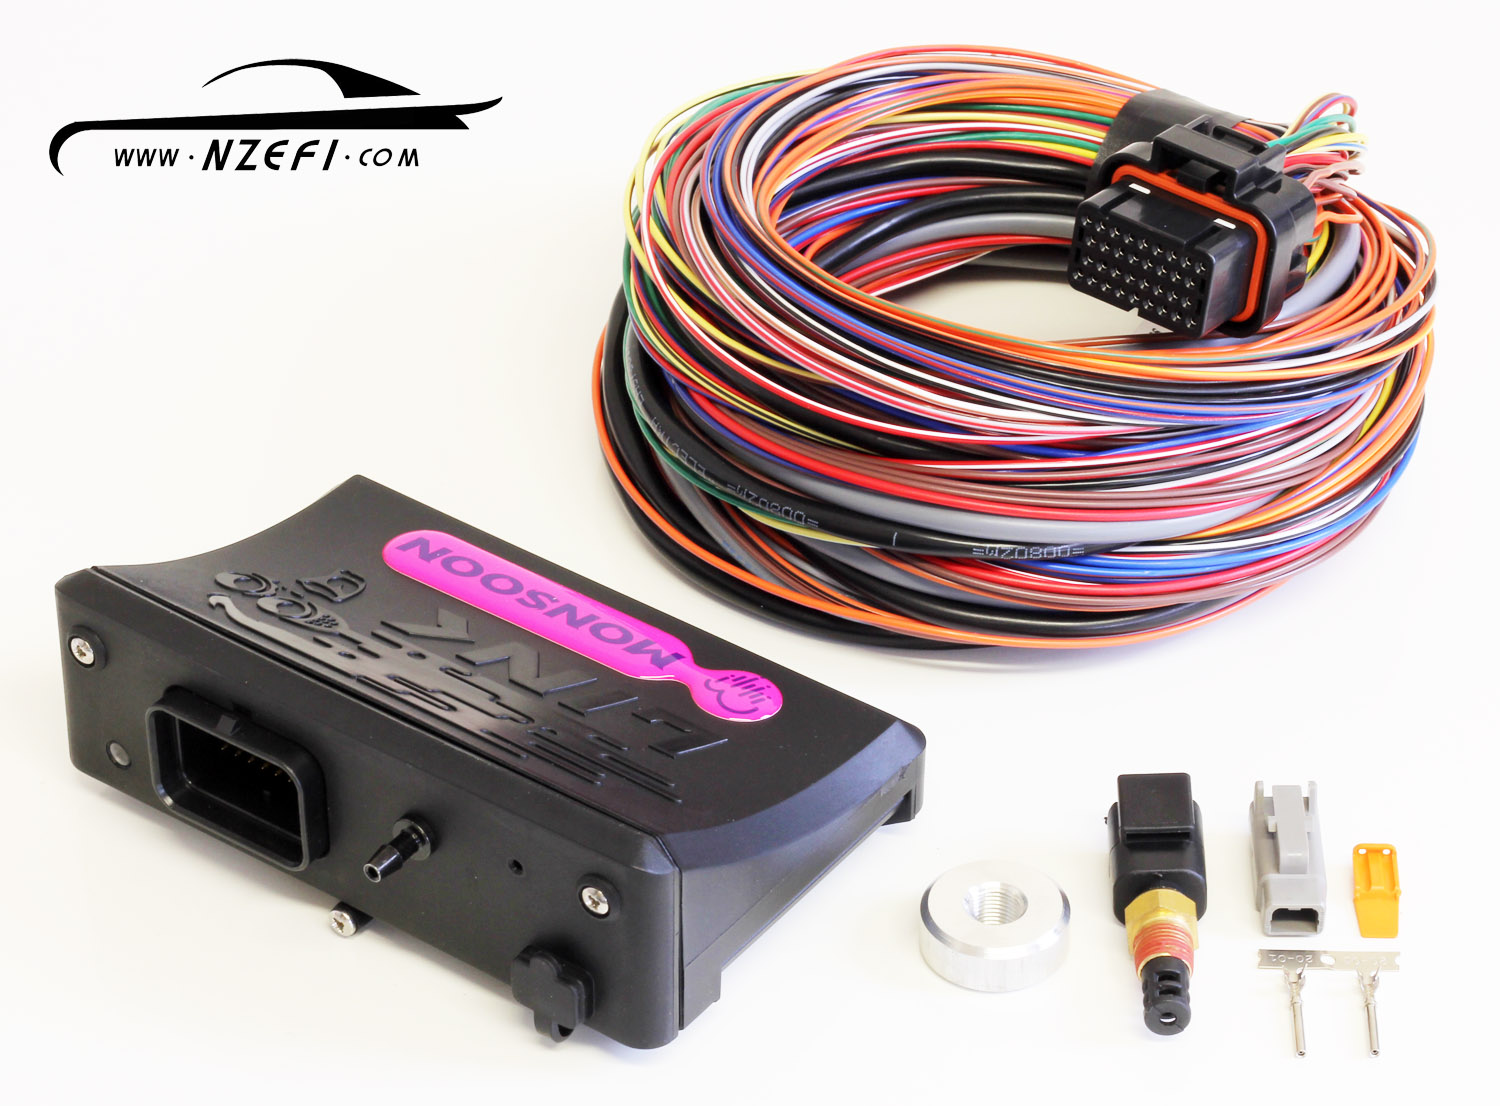 Nzefi Engine Management Solutions Mitsubishi Wiring Harness Nz Link G4 Monsoon Essentials Package